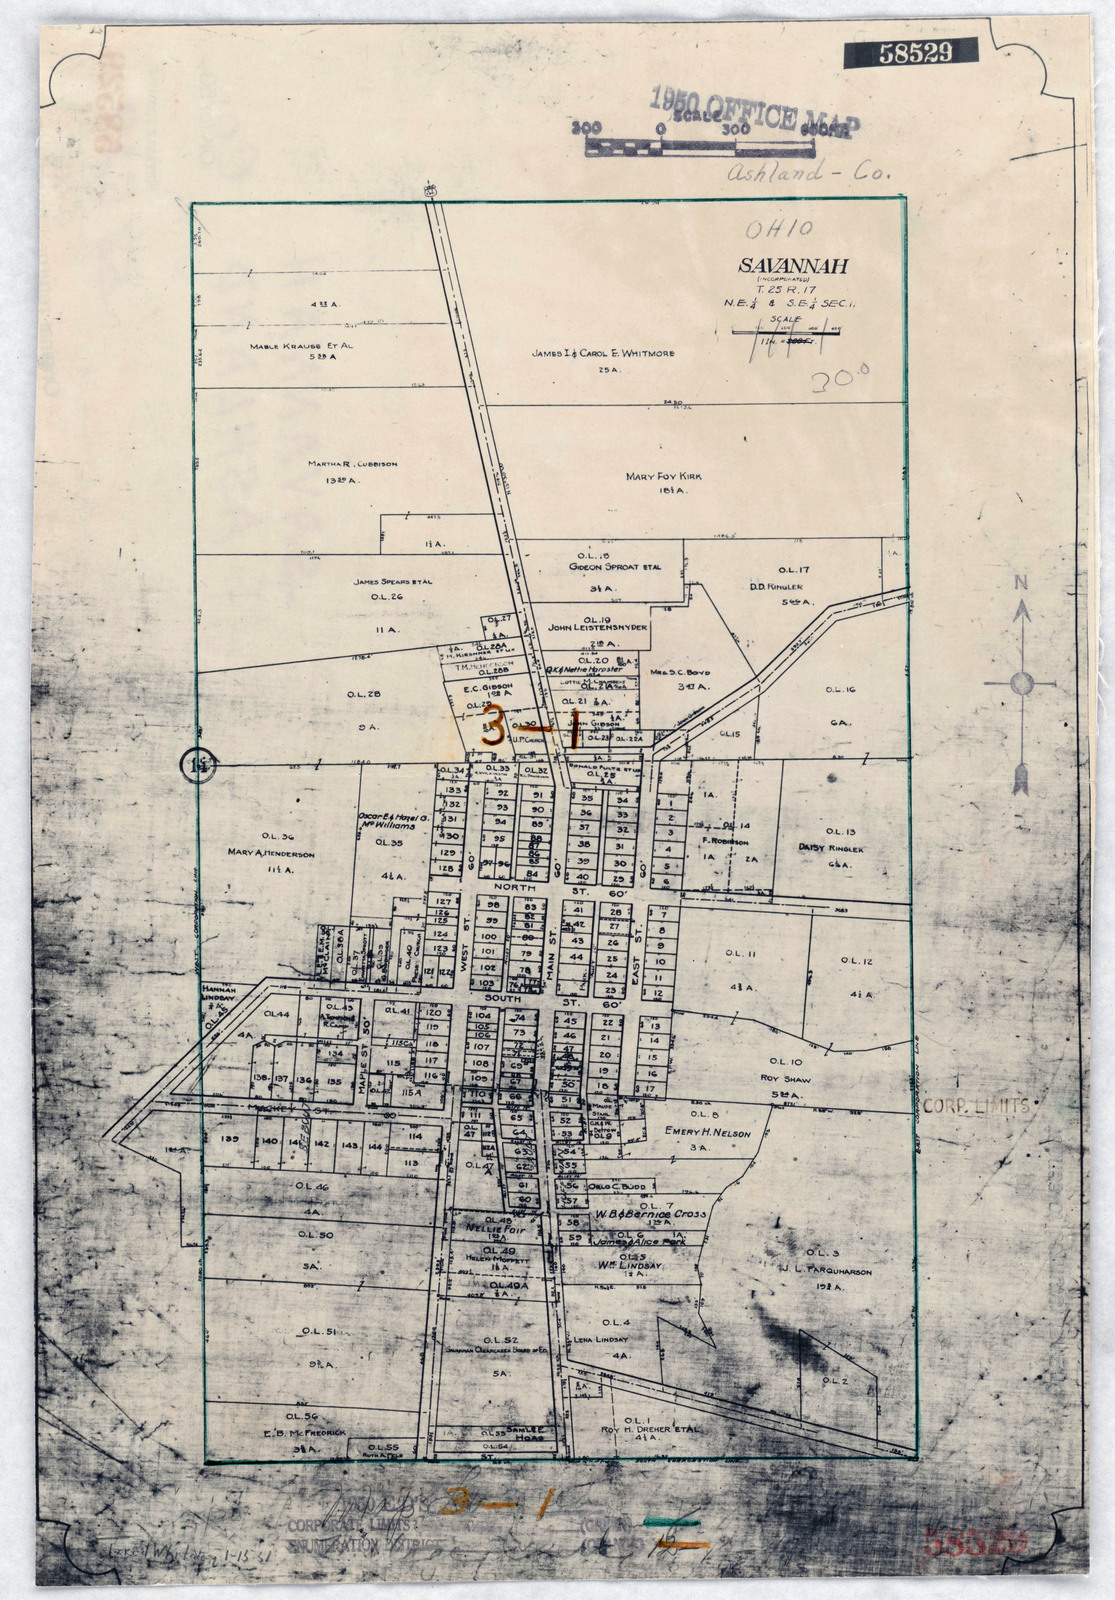 1950 Census Enumeration District Maps - Ohio (OH) - Ashland ... on map of warren ohio, crawford county, map of united states ohio, map of jeromesville ohio, map of ashland ohio area, map of cincinnati ohio, hancock county, allen county, map of clear creek township ohio, adams county, map of mifflin township ohio, holmes county, map of chippewa ohio, map of parma ohio, map of broadview heights ohio, map of lebanon ohio, richland county, map of milton township ohio, franklin county, map of canton ohio, clark county, map of beloit ohio, cuyahoga county, map of perry township ohio, knox county, map of orange township ohio, lorain county, wayne county, lake county, medina county, map of ashtabula ohio, erie county, map of west chester ohio, map of cuyahoga river ohio, delaware county, fairfield county, marion county, map of madison ohio,